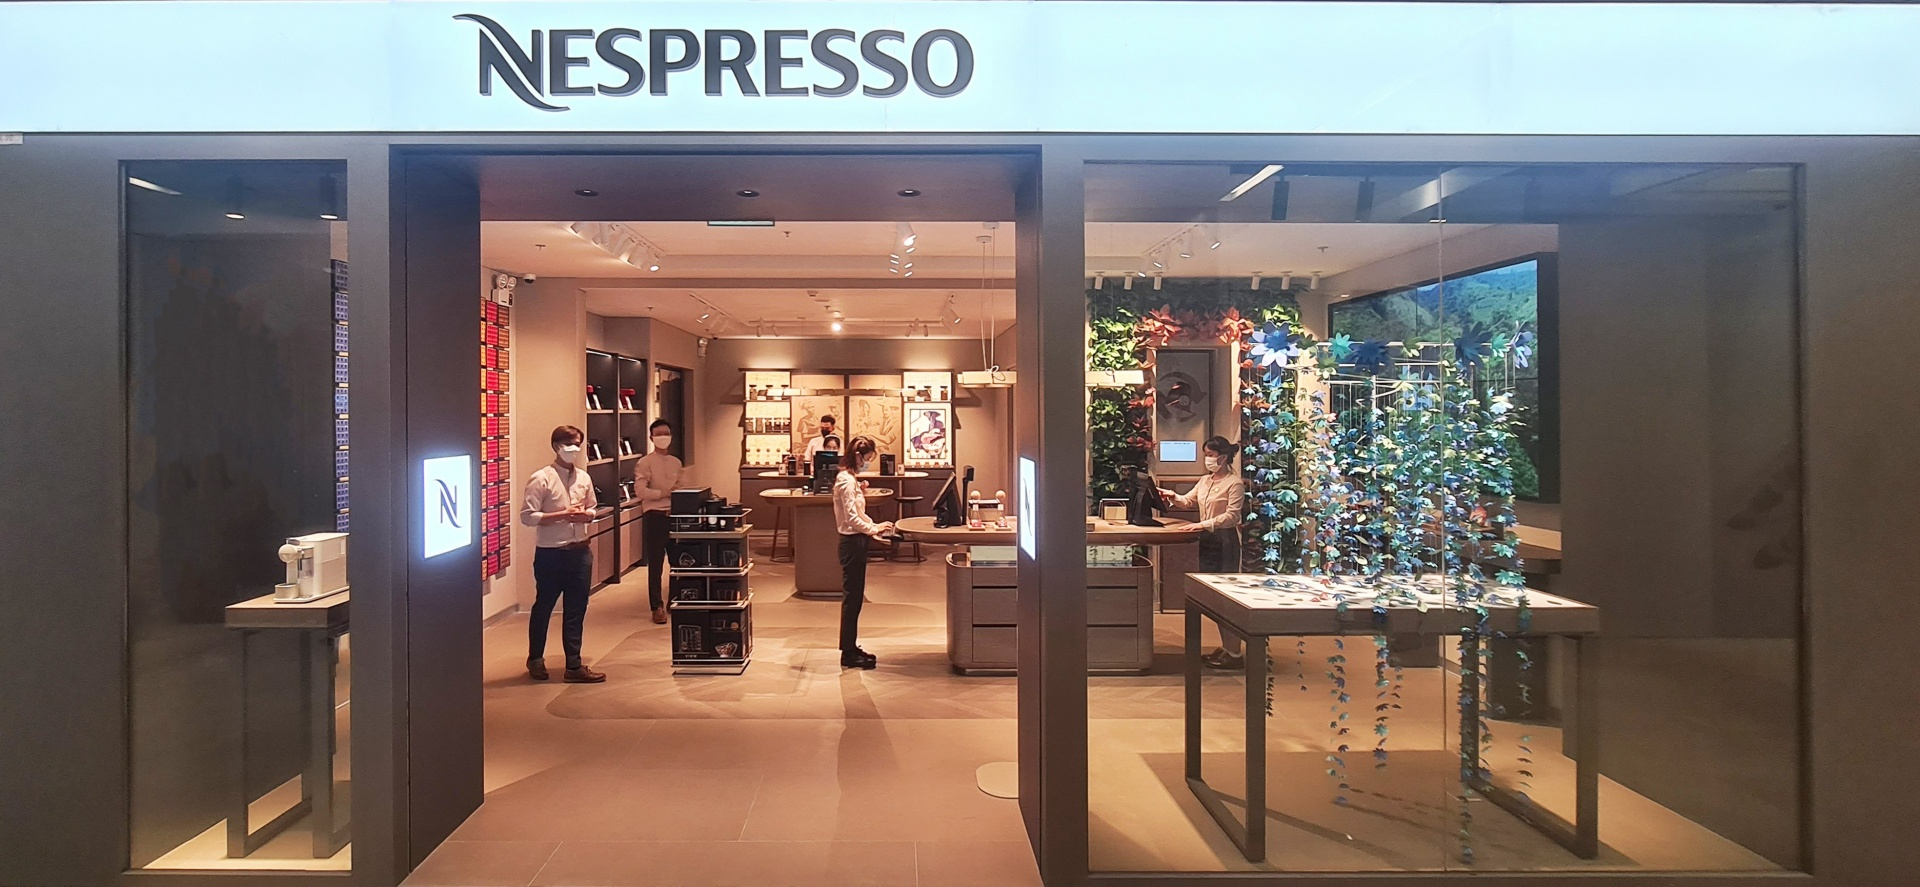 Nespresso Boutique opens Saigon Center outlet with new coffee experience